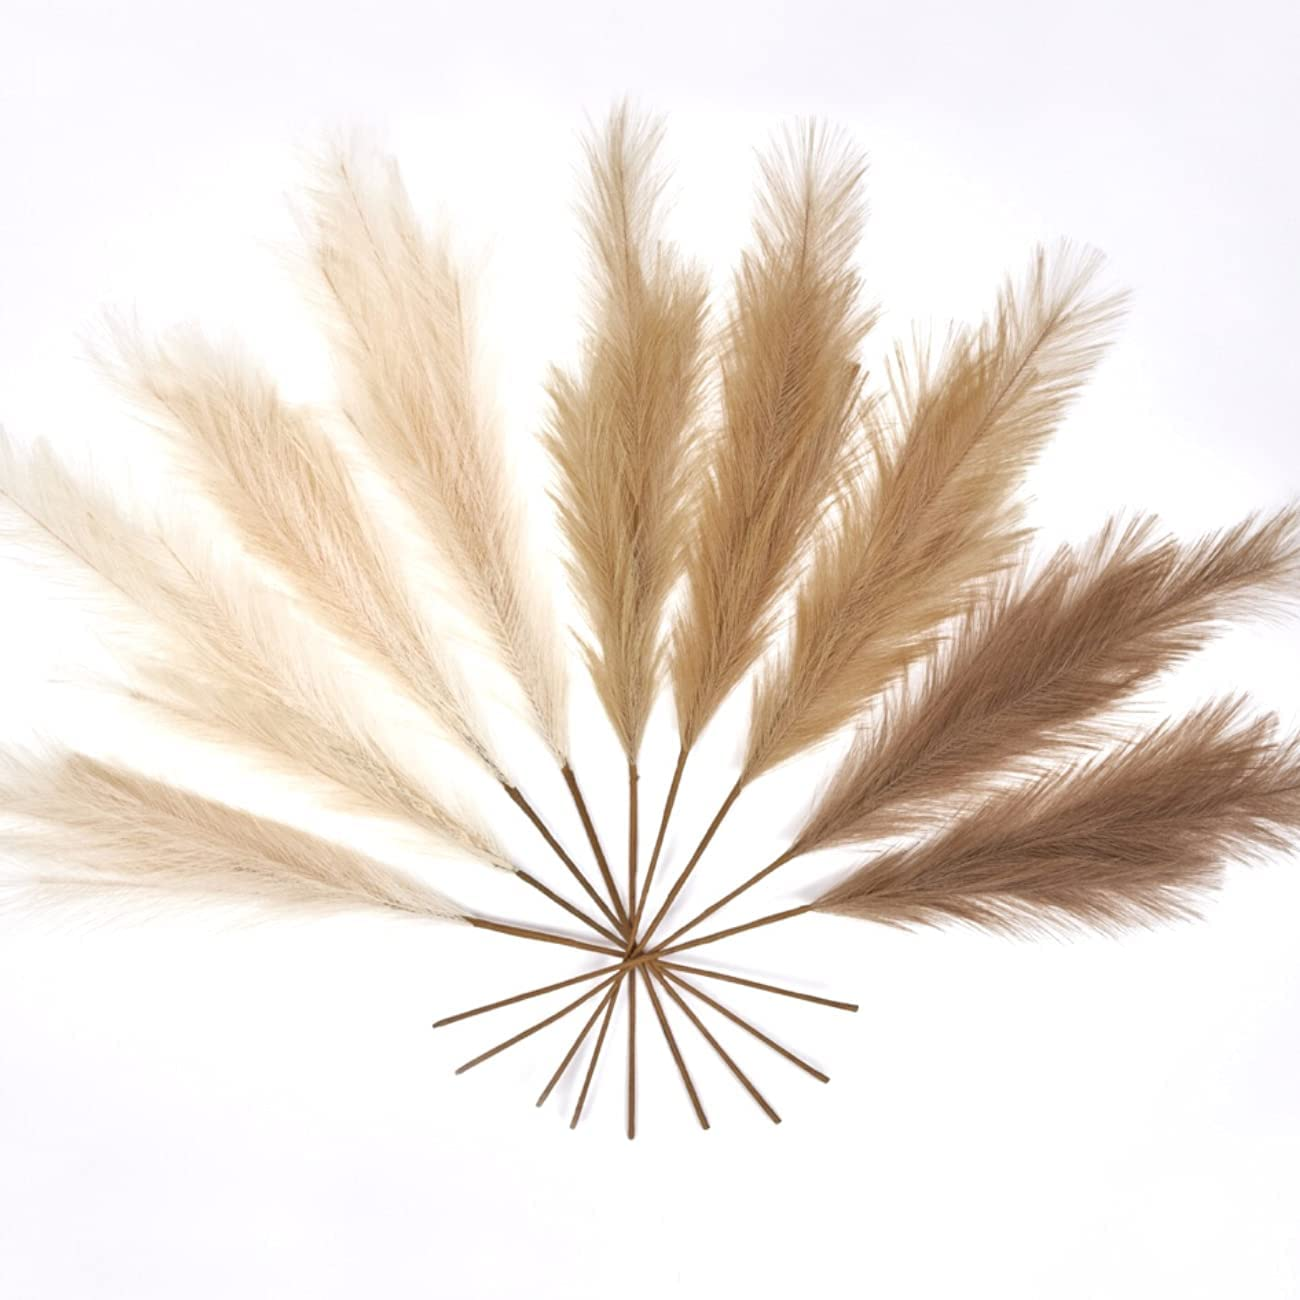 """LUNAMA Artificial Faux Pampas Grass Branches   20 Pcs of 20"""" Tall Pampas  Stems in 20 Natural Colours   Home Decor, Wedding Boho Decor   Small Fluffy  ..."""